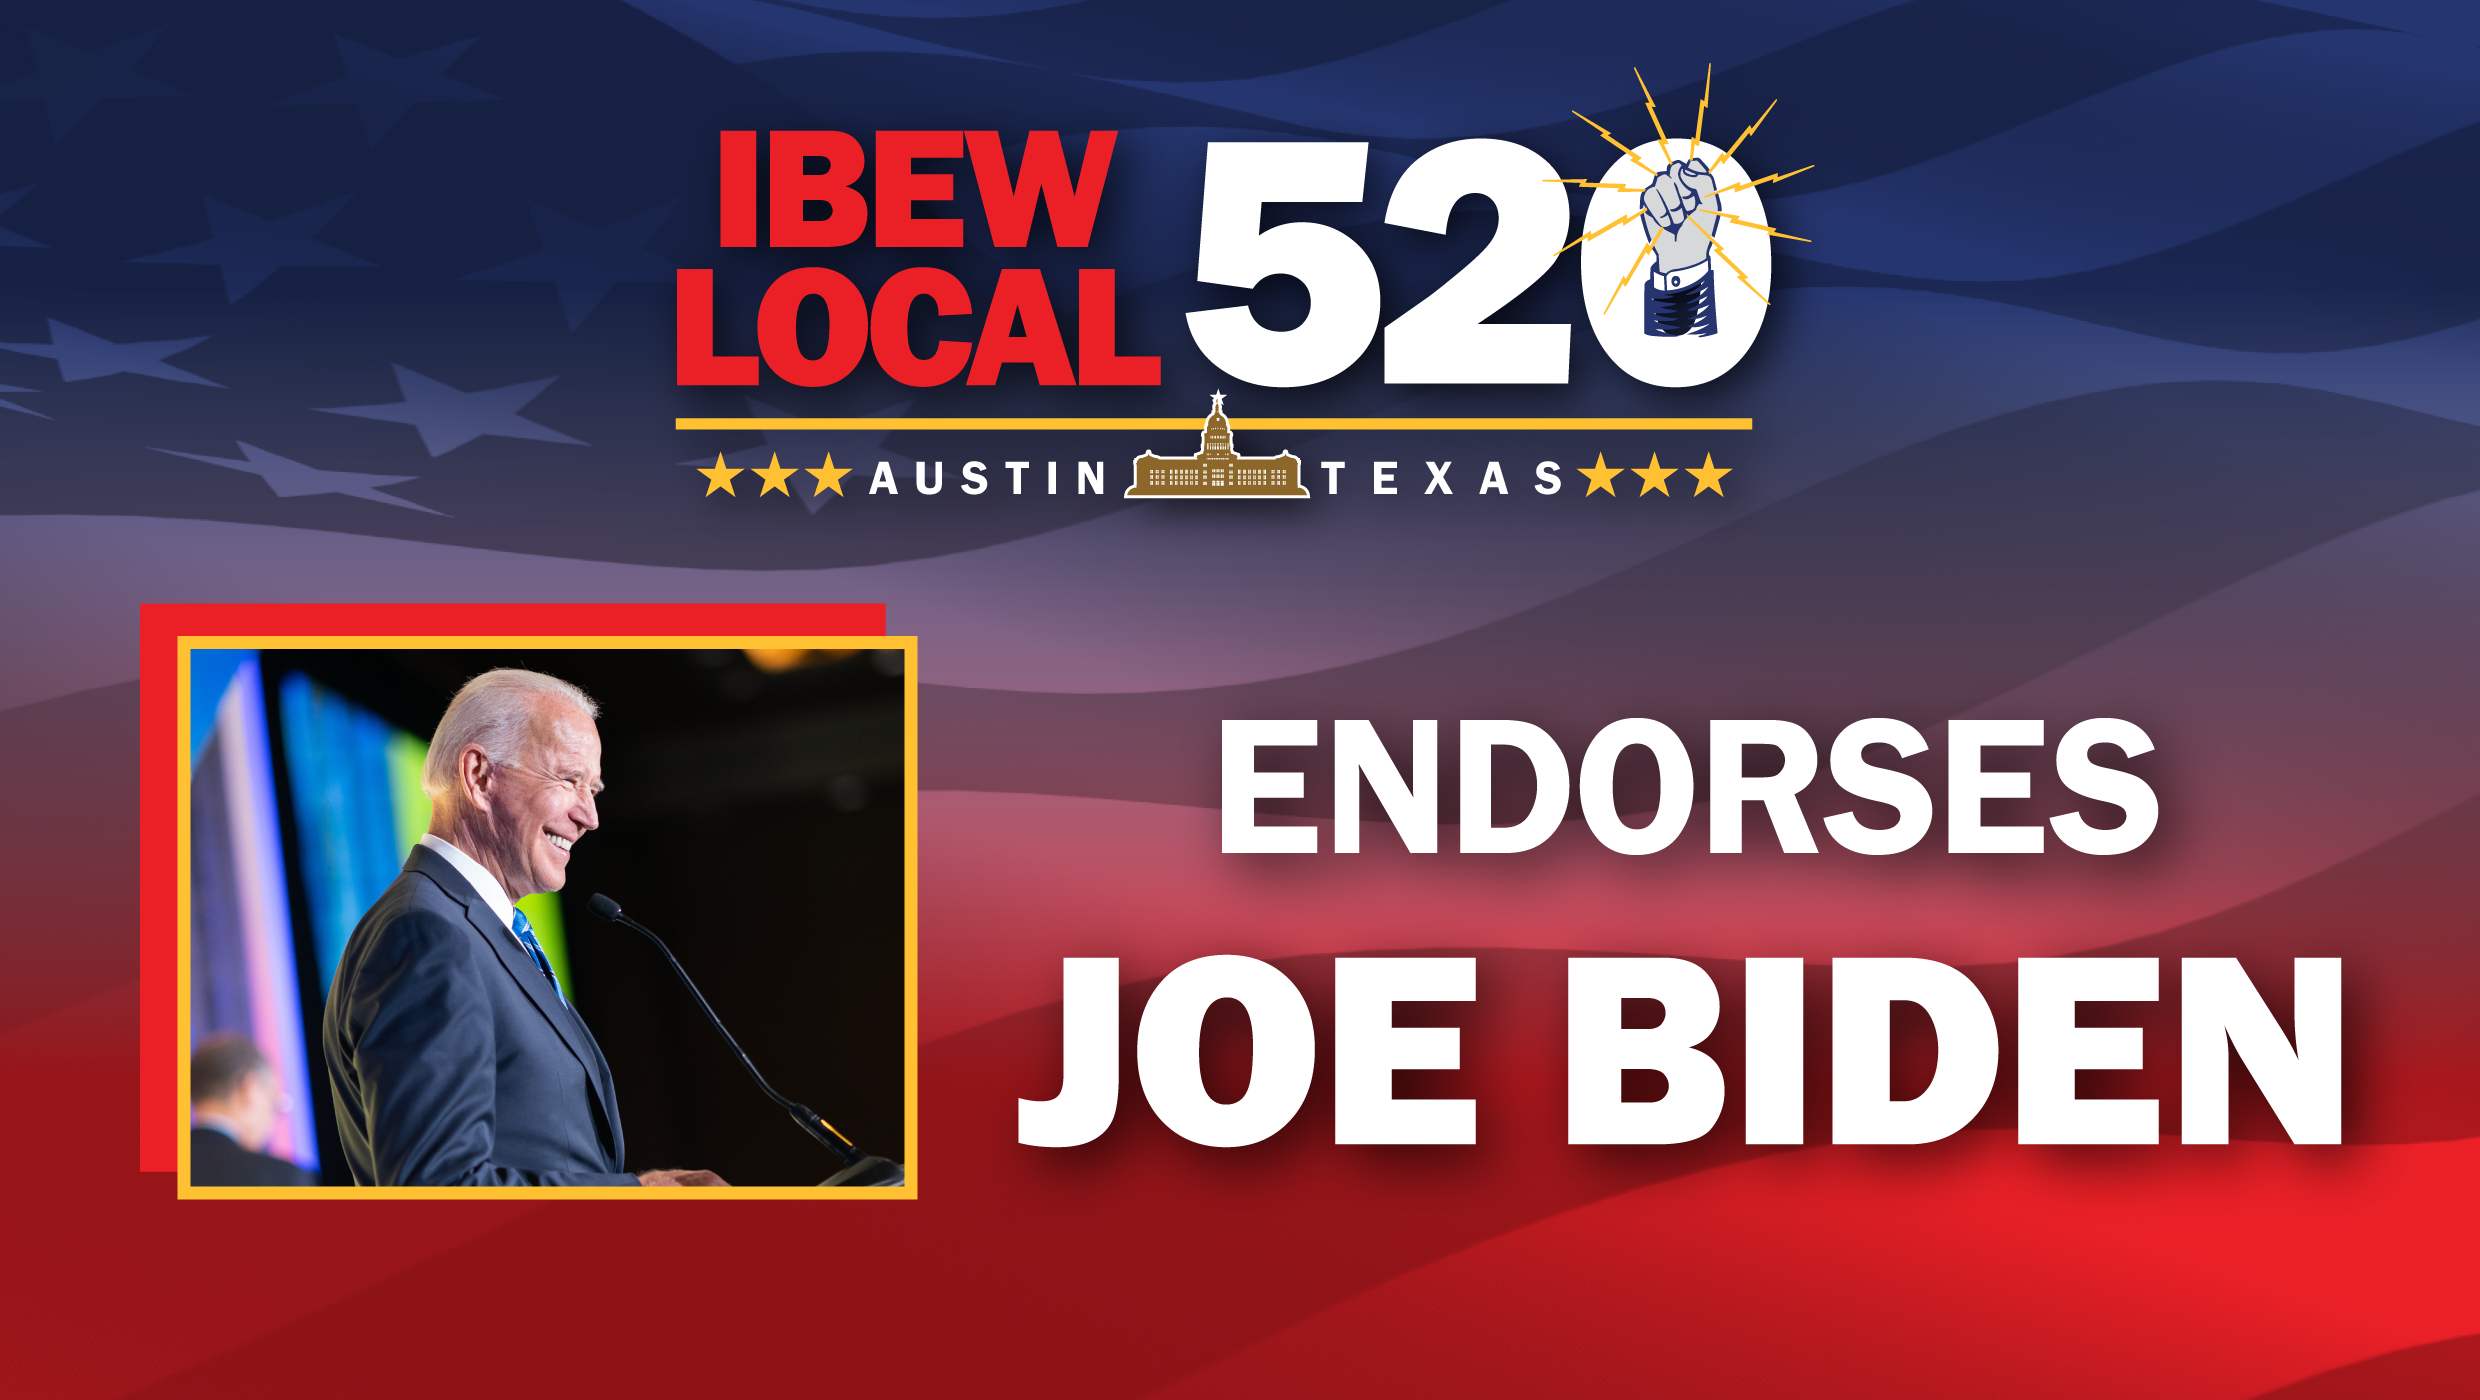 IBEW 520 - Endorses Joe Biden